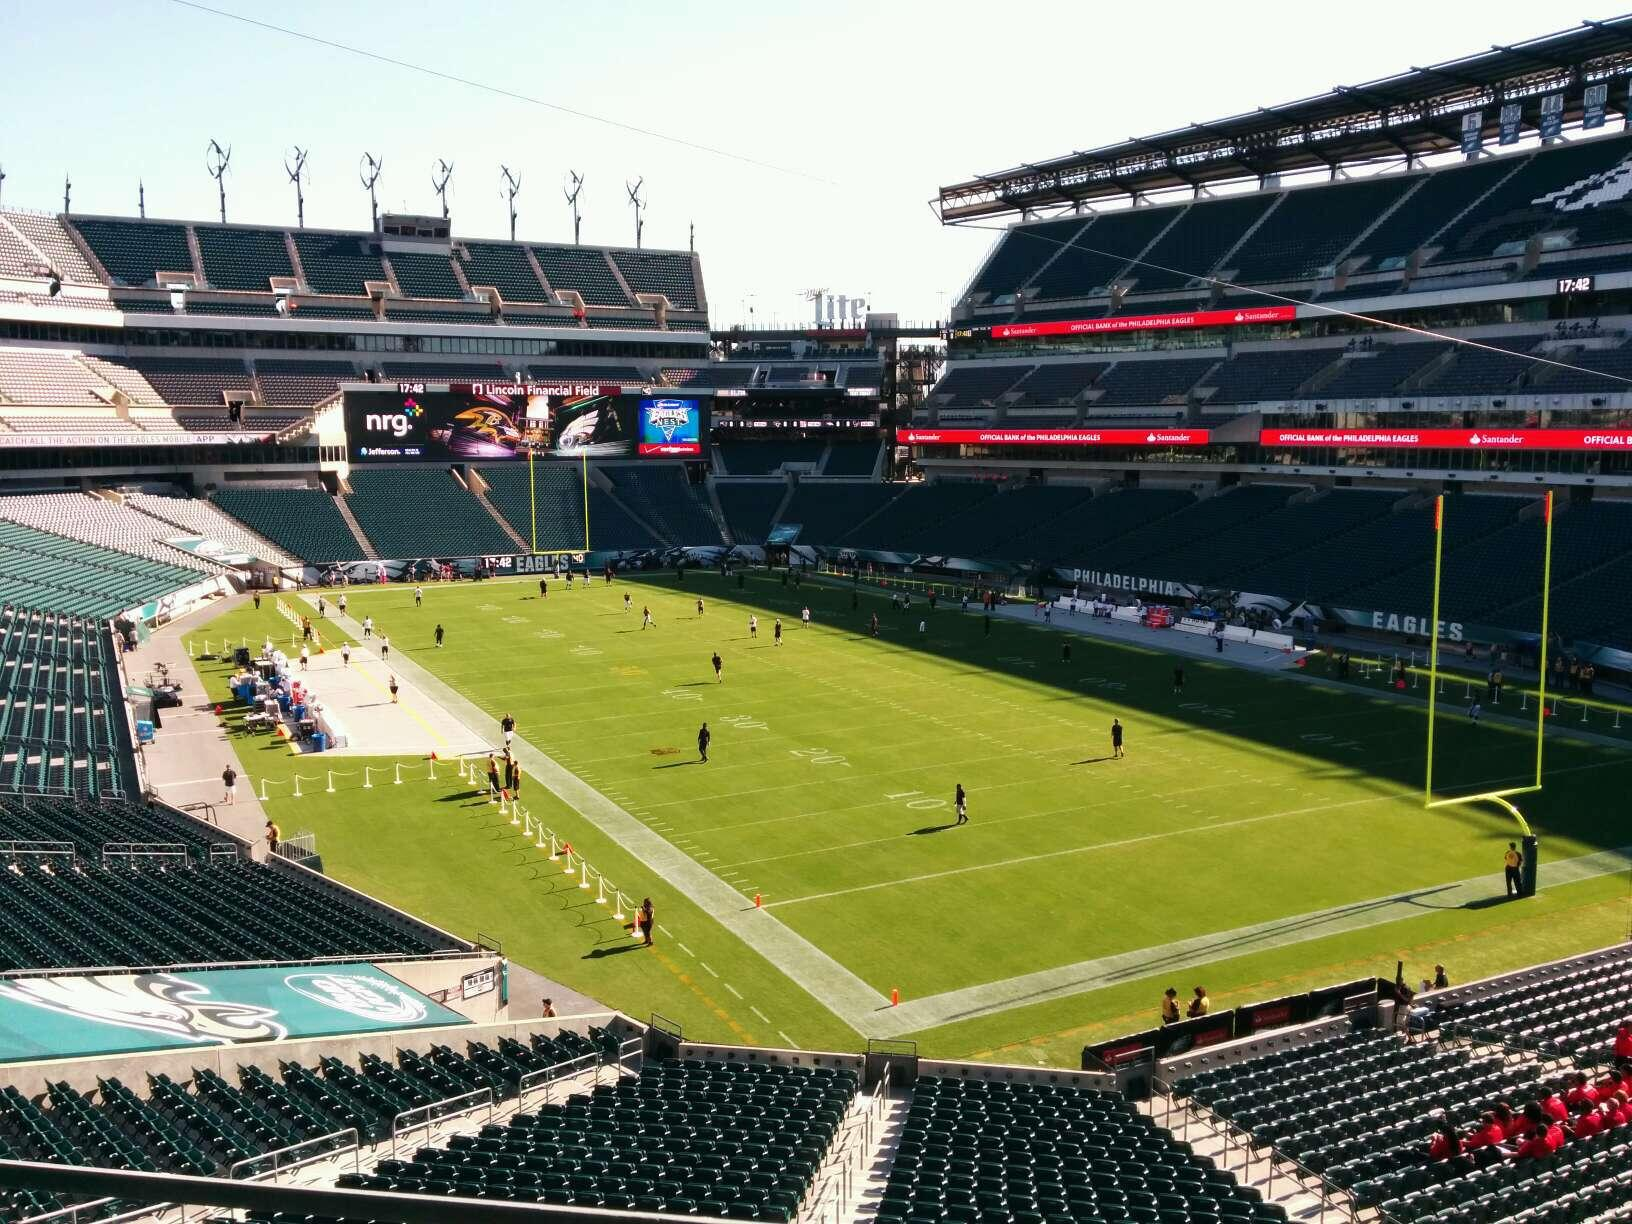 Lincoln Financial Field Section NE Terrace 2 Row 2 Seat 21